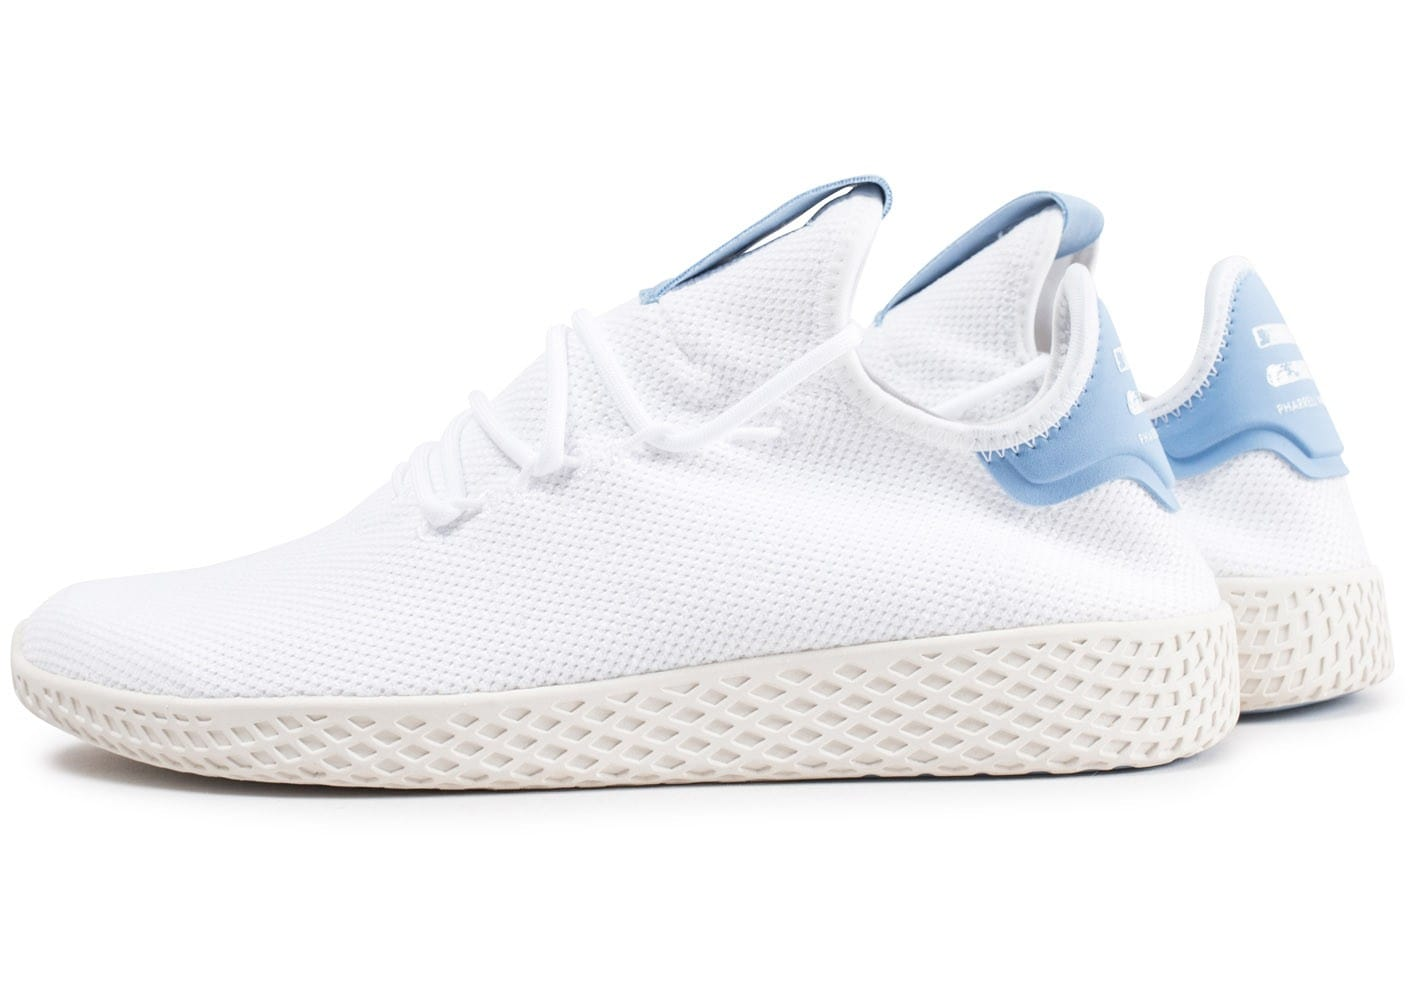 Chaussures Pharrell Williams Adidas Originals blanches Fashion homme